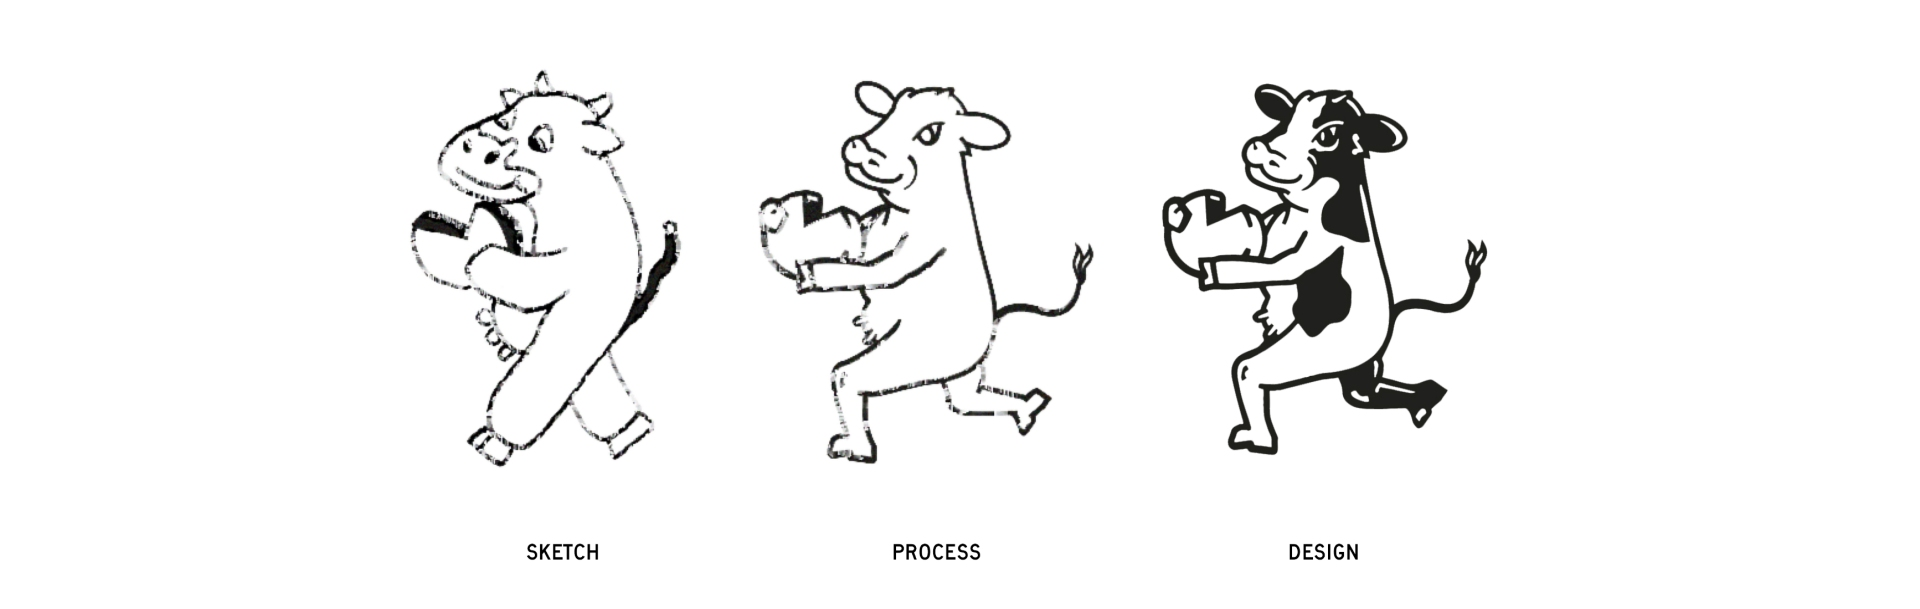 sketch-mascot-guideline-new-bridge-cheese-design-exploration-zeki-michael-design-cheese-cow-spread-tub-sku-range-agency-branding copy copy